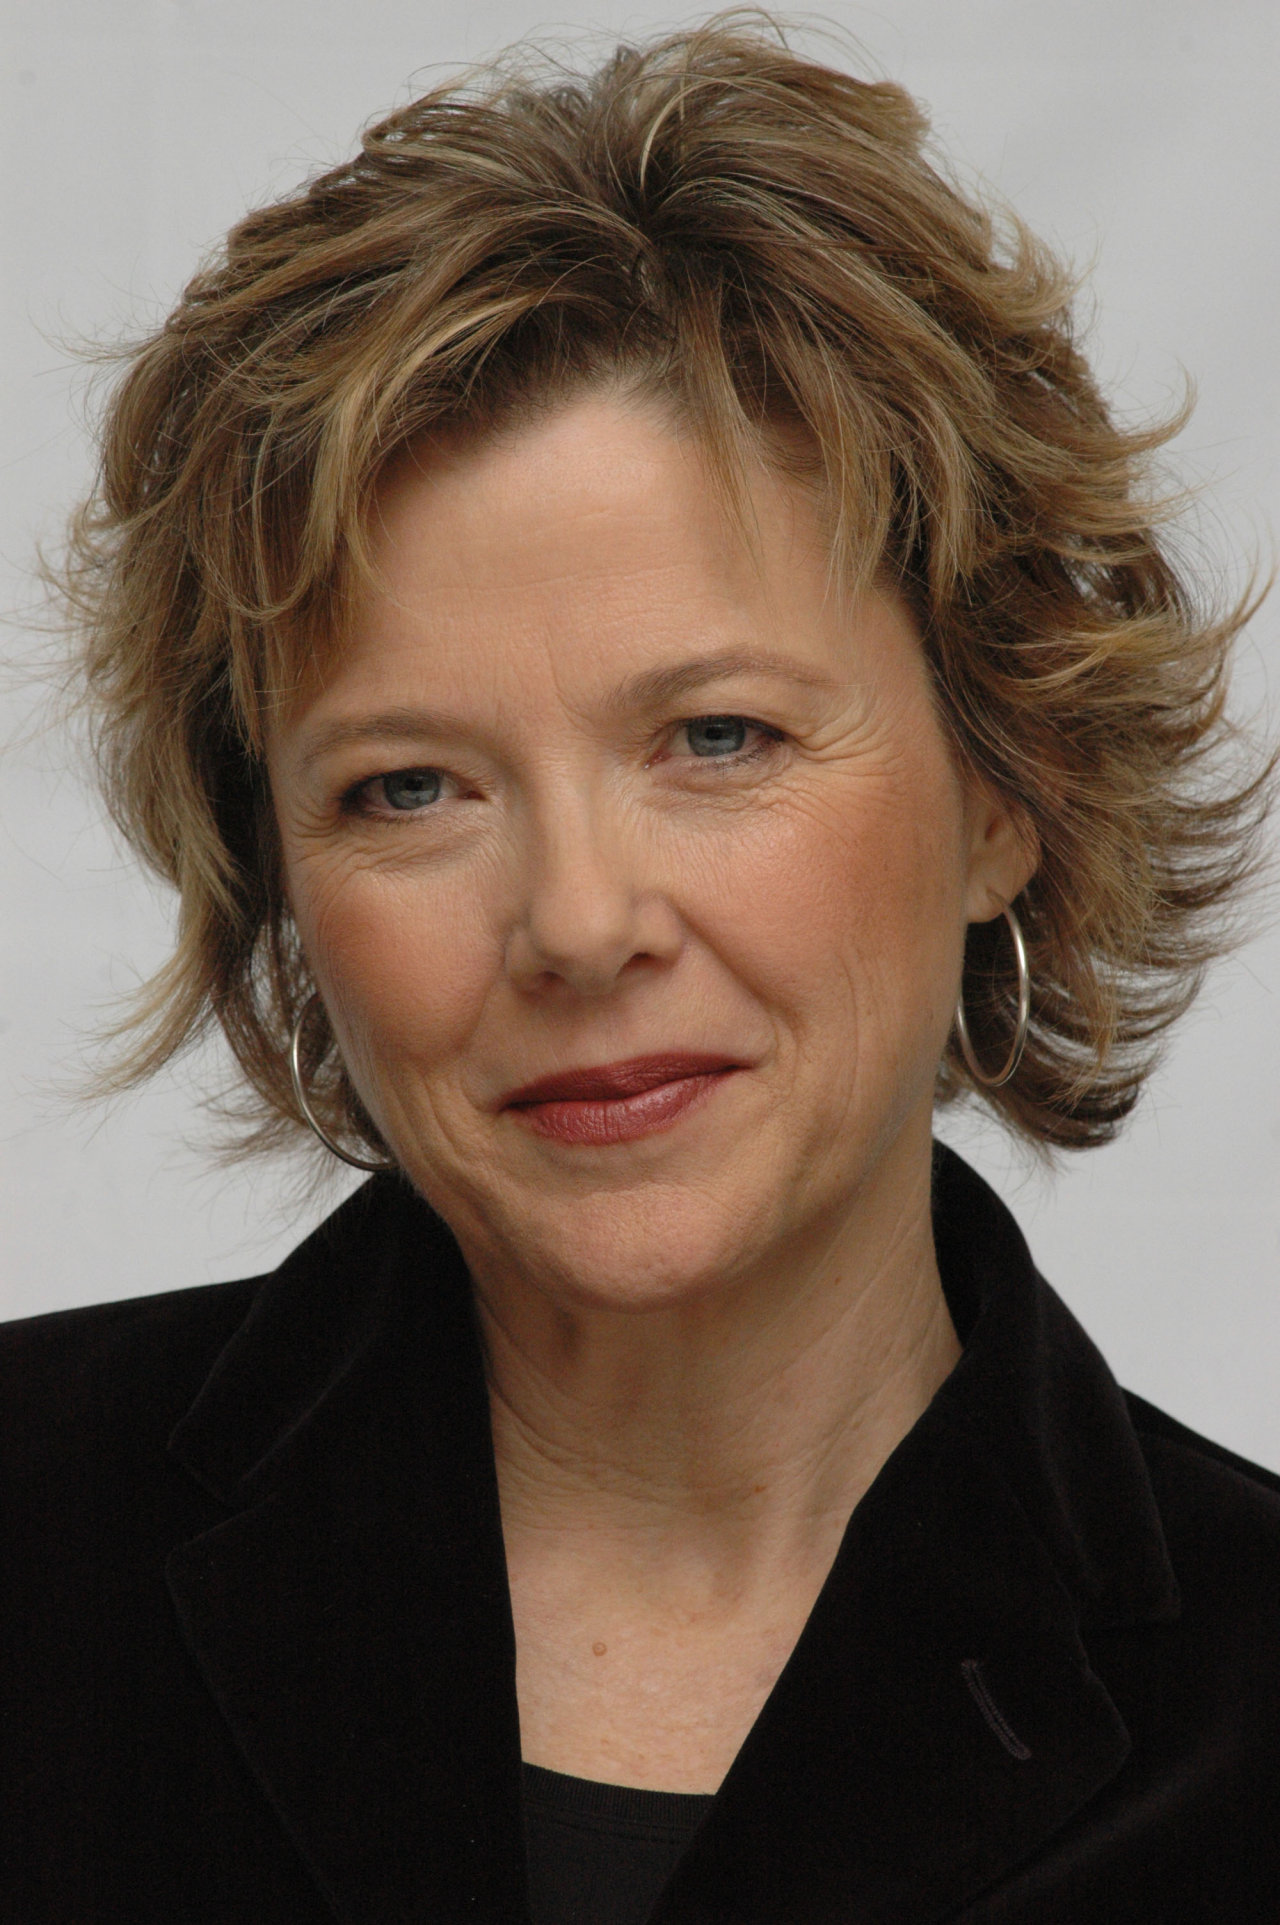 annette bening wallpaper-#3